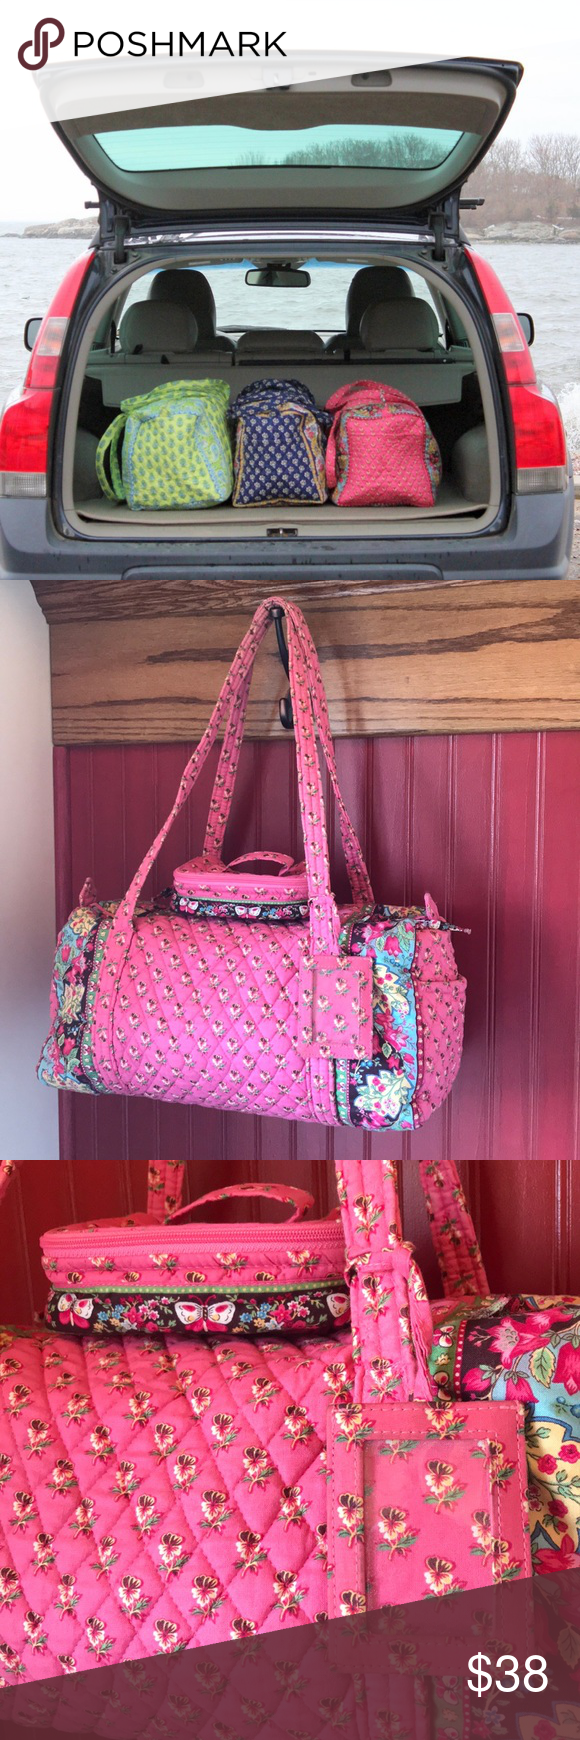 404de0ce37 💕🌸LOT of retired Vera Bradley PINK PANSY🌸💕 Gently used for travel from